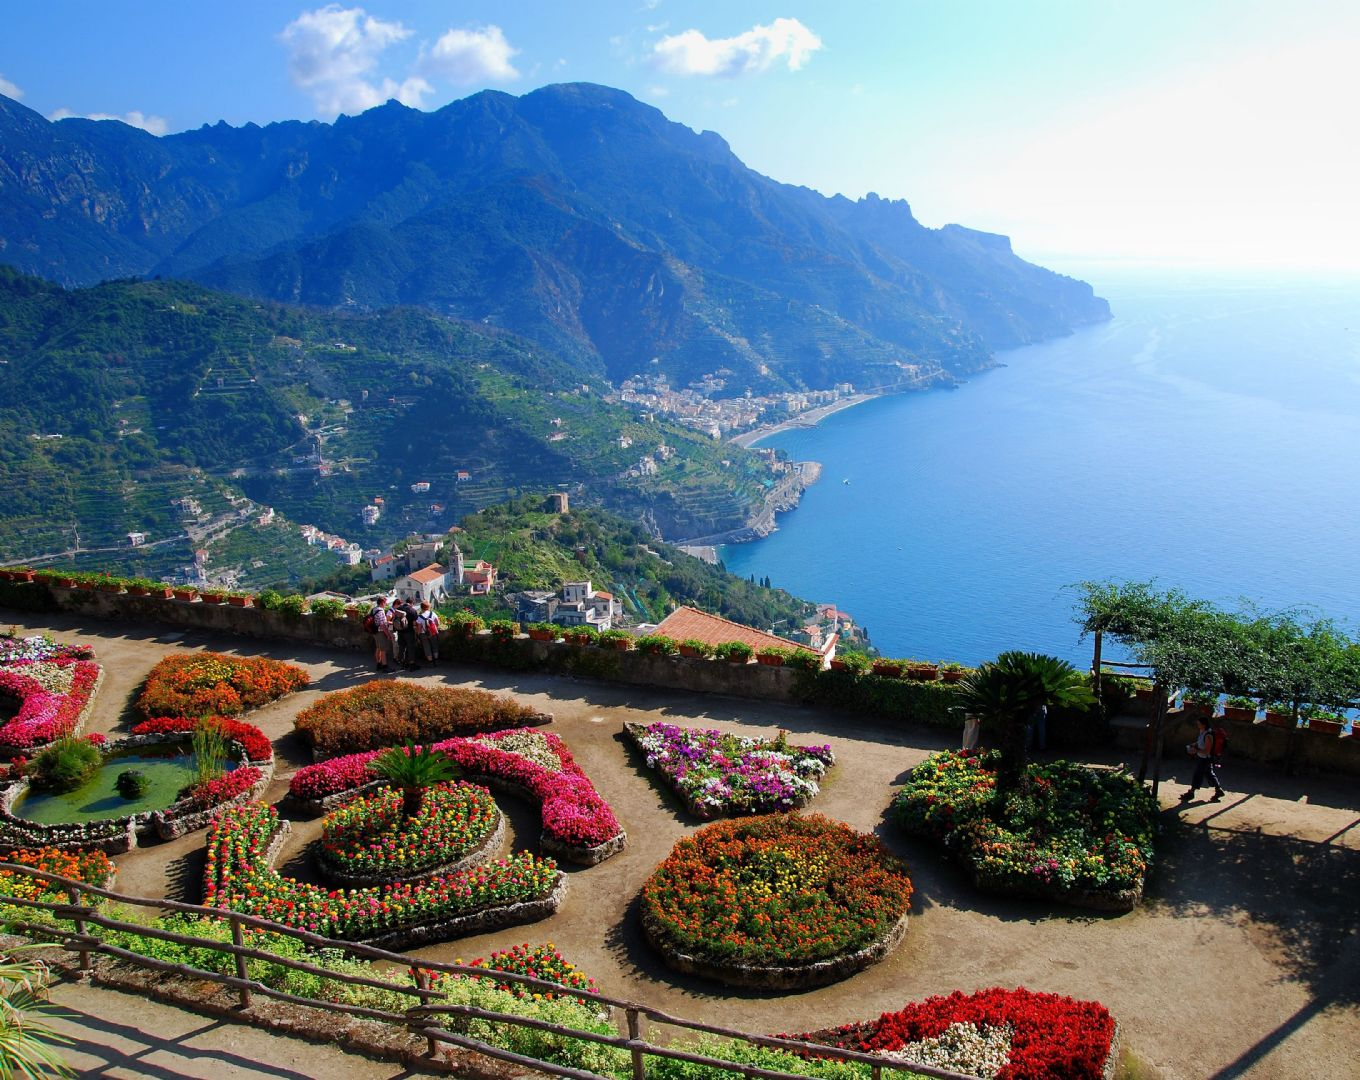 Amalfi06.jpg - Italy - Cilento and The Amalfi Coast - Guided Leisure Cycling Holiday - Italia Leisure and Family Cycling